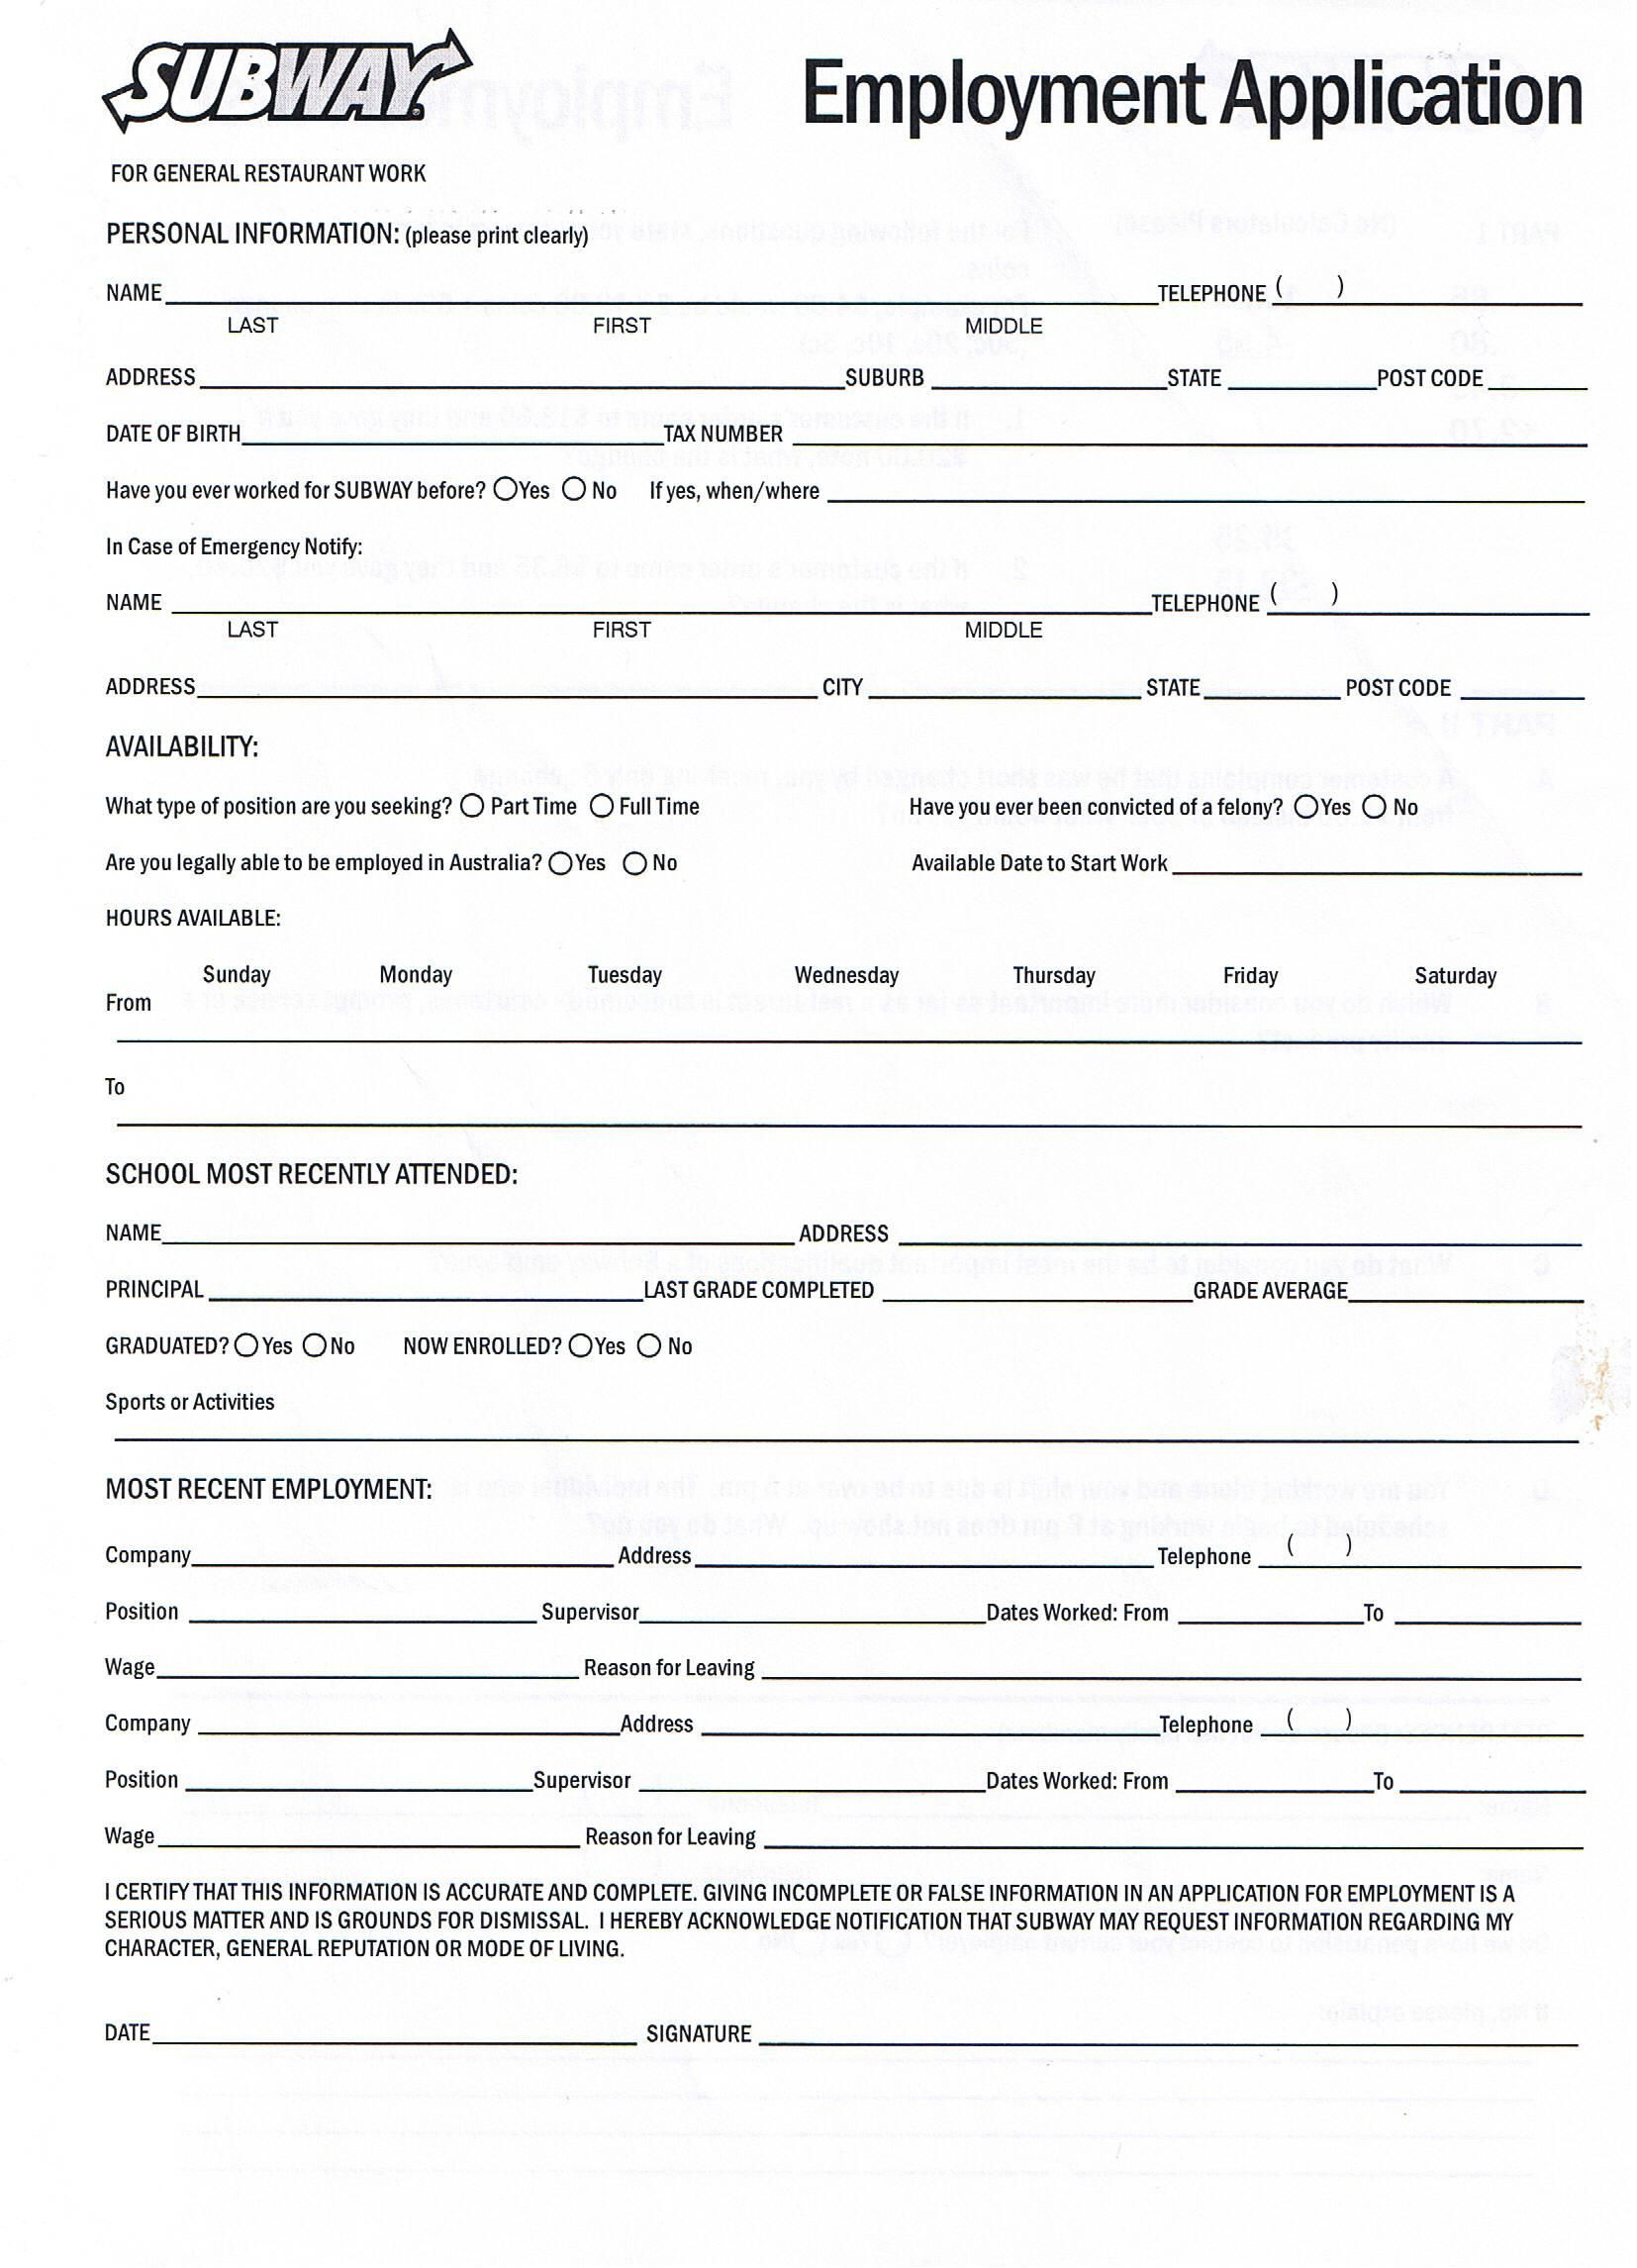 fa32d8f6ca56a6e61b3de4f0b2aa1847 Online Form Filling Job In Mobile on